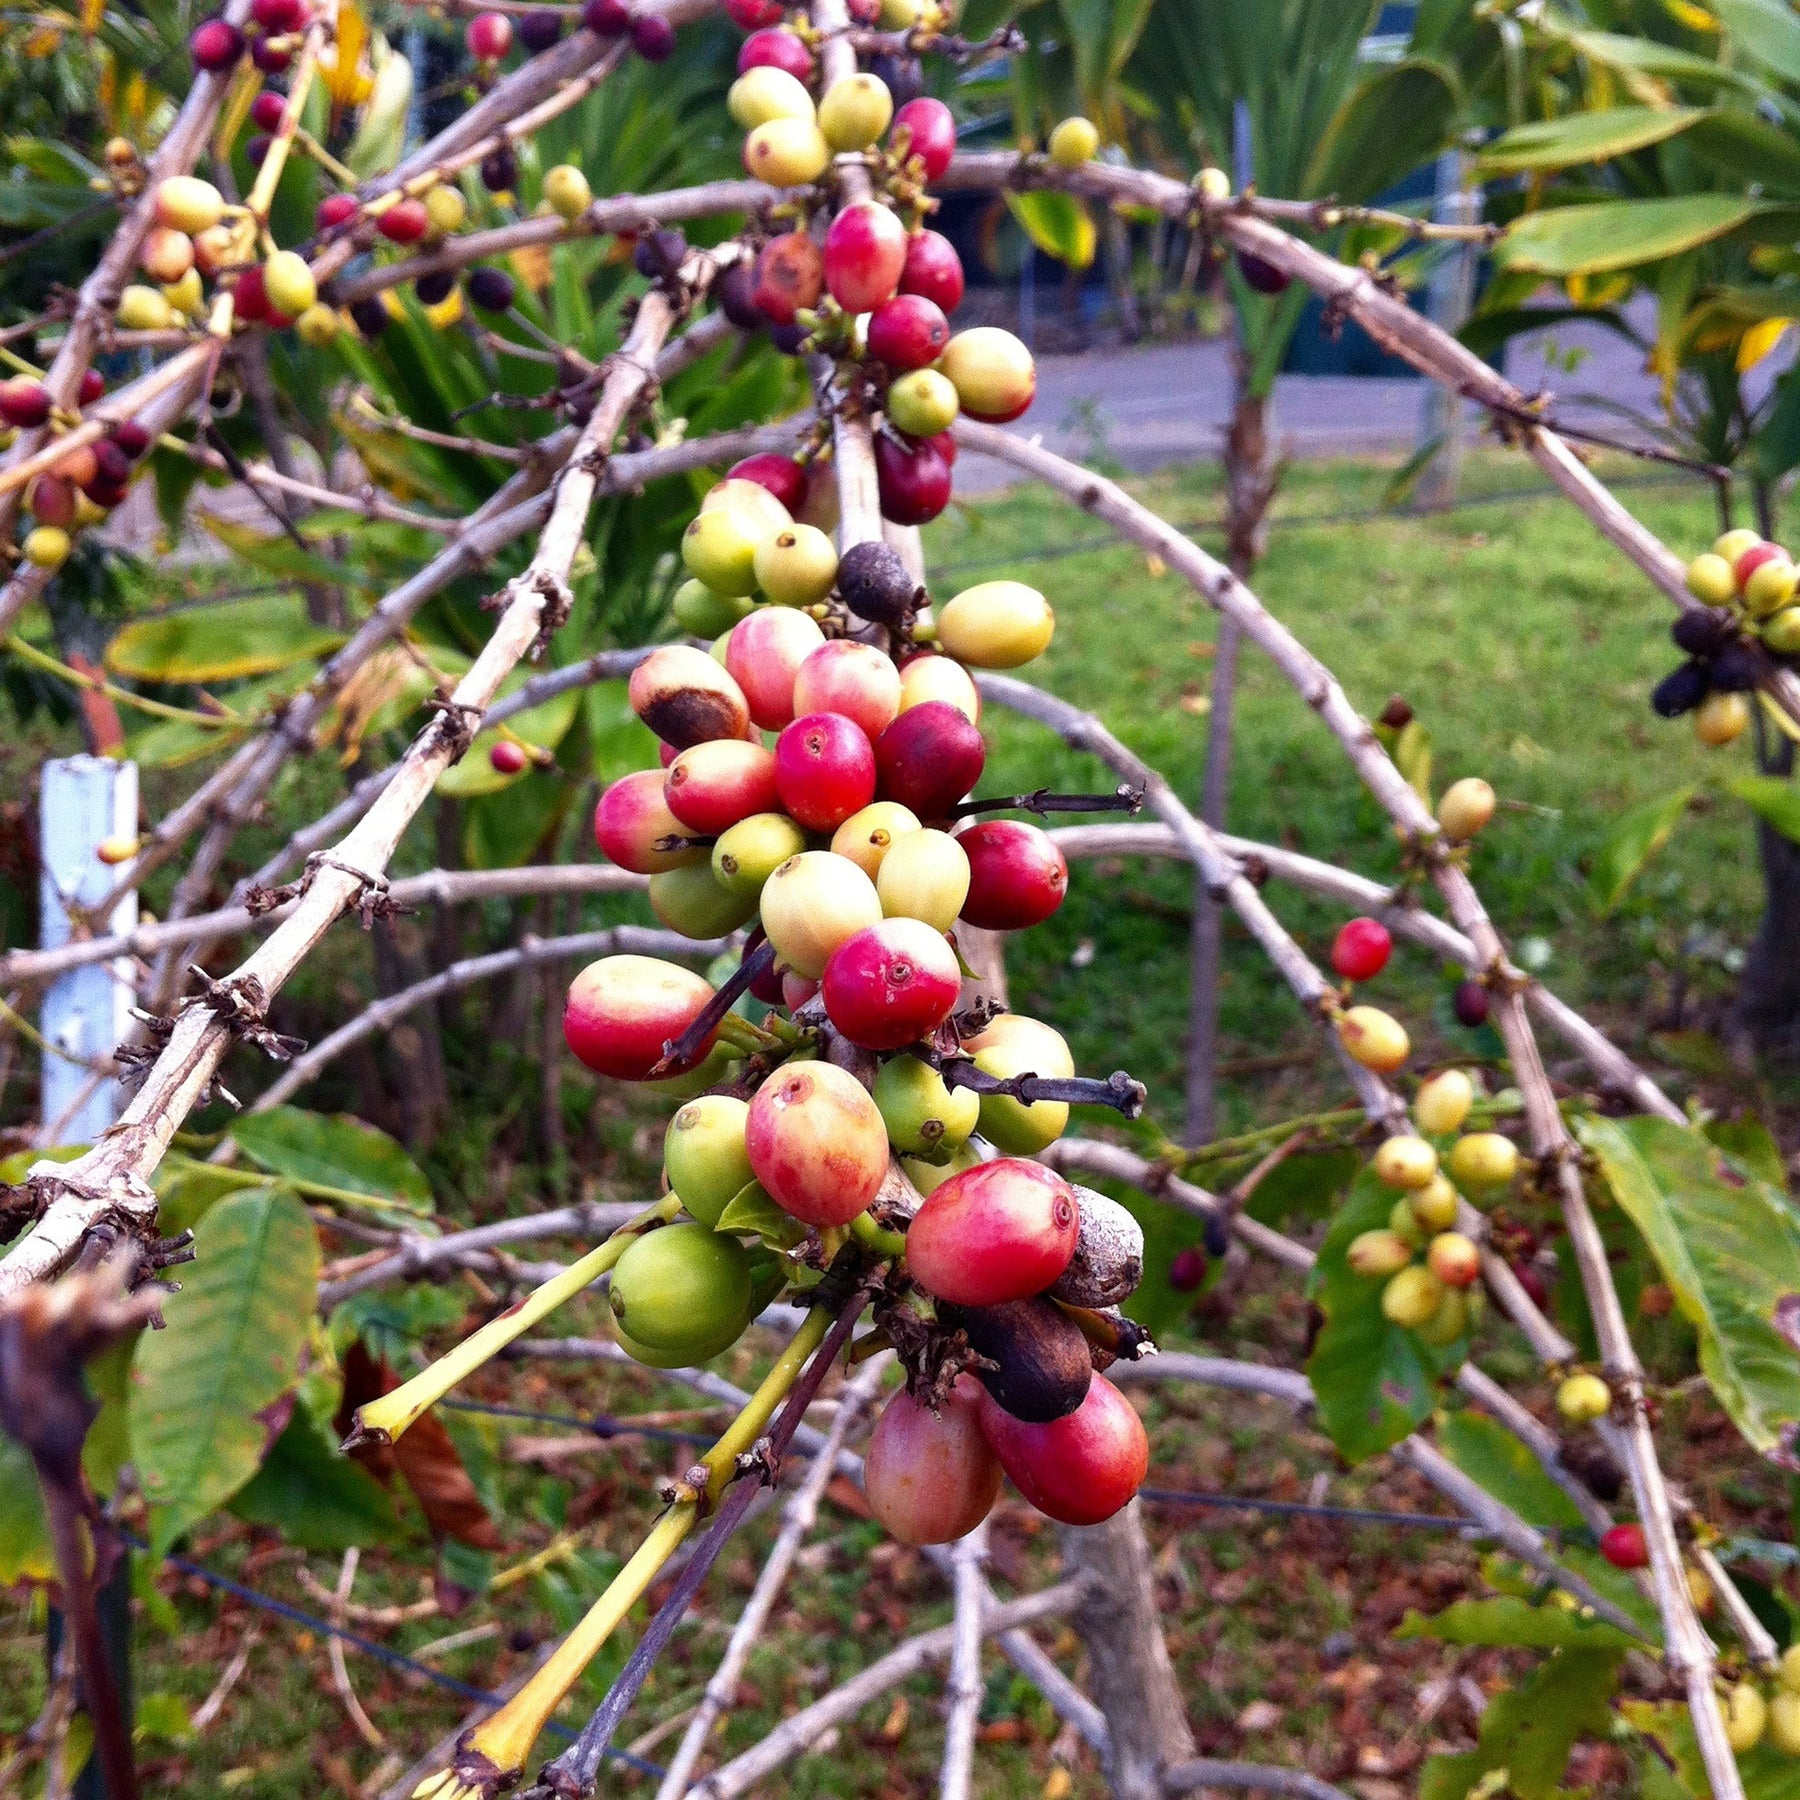 Mountain Thunder Organic Kona Coffee Grows in Donkey Poo